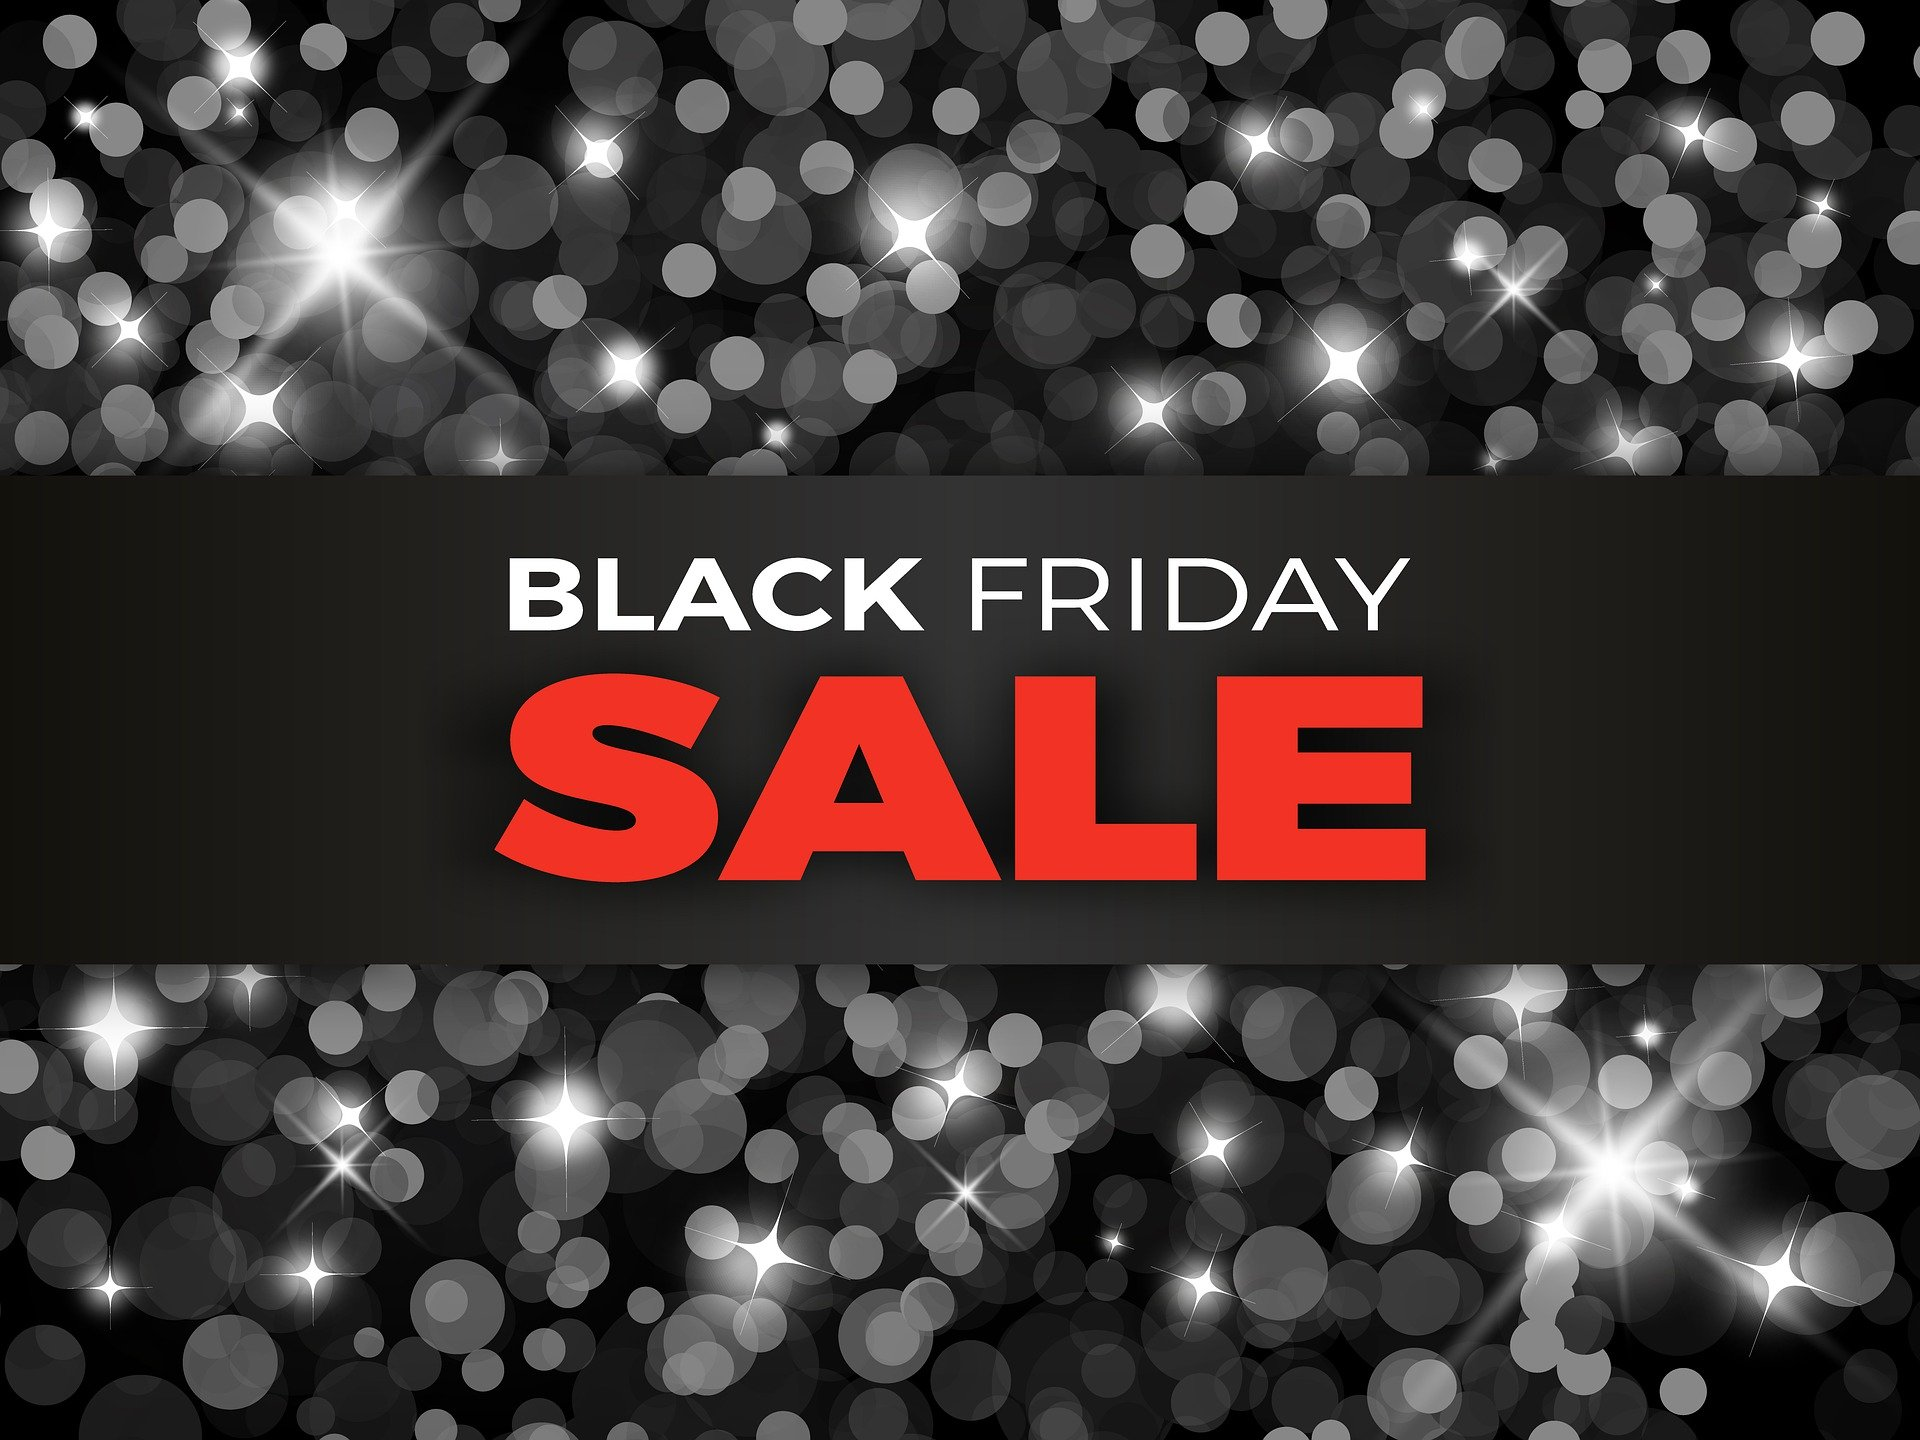 Black Friday Sale Allure Rejuvenation Center